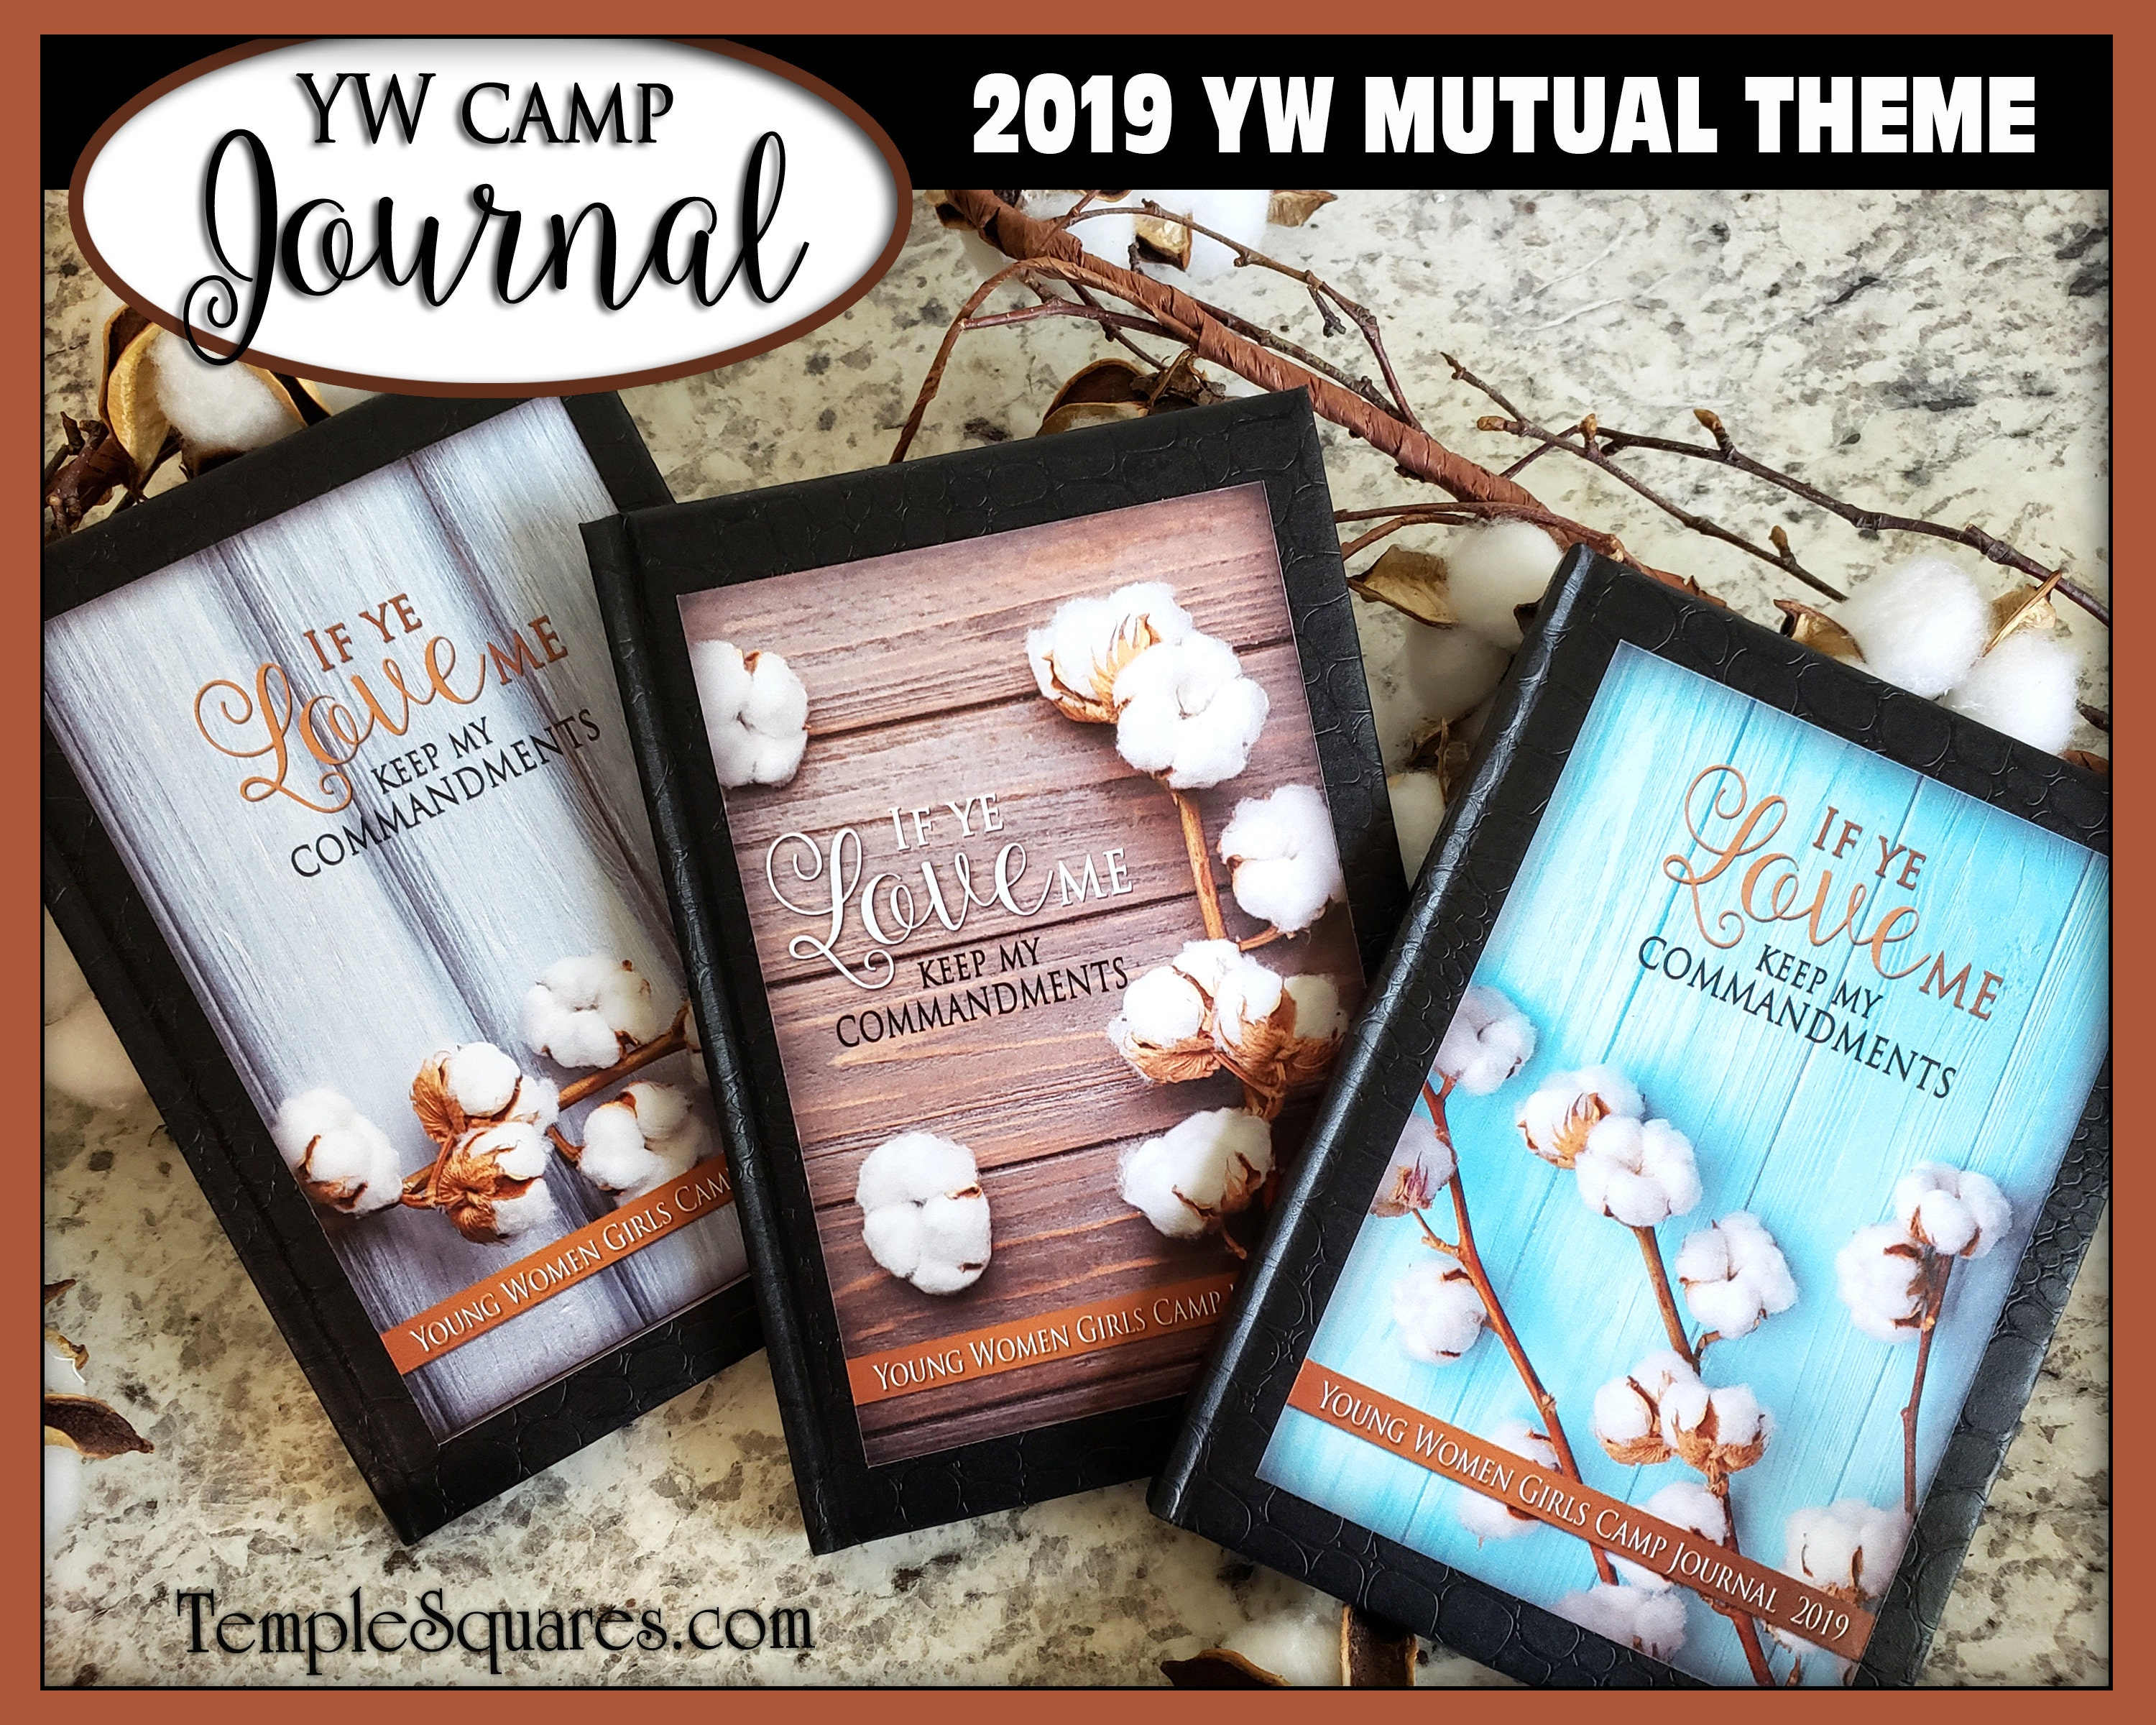 YW Girls Camp Journal 2019 Mutual Theme If Ye Love Me Keep